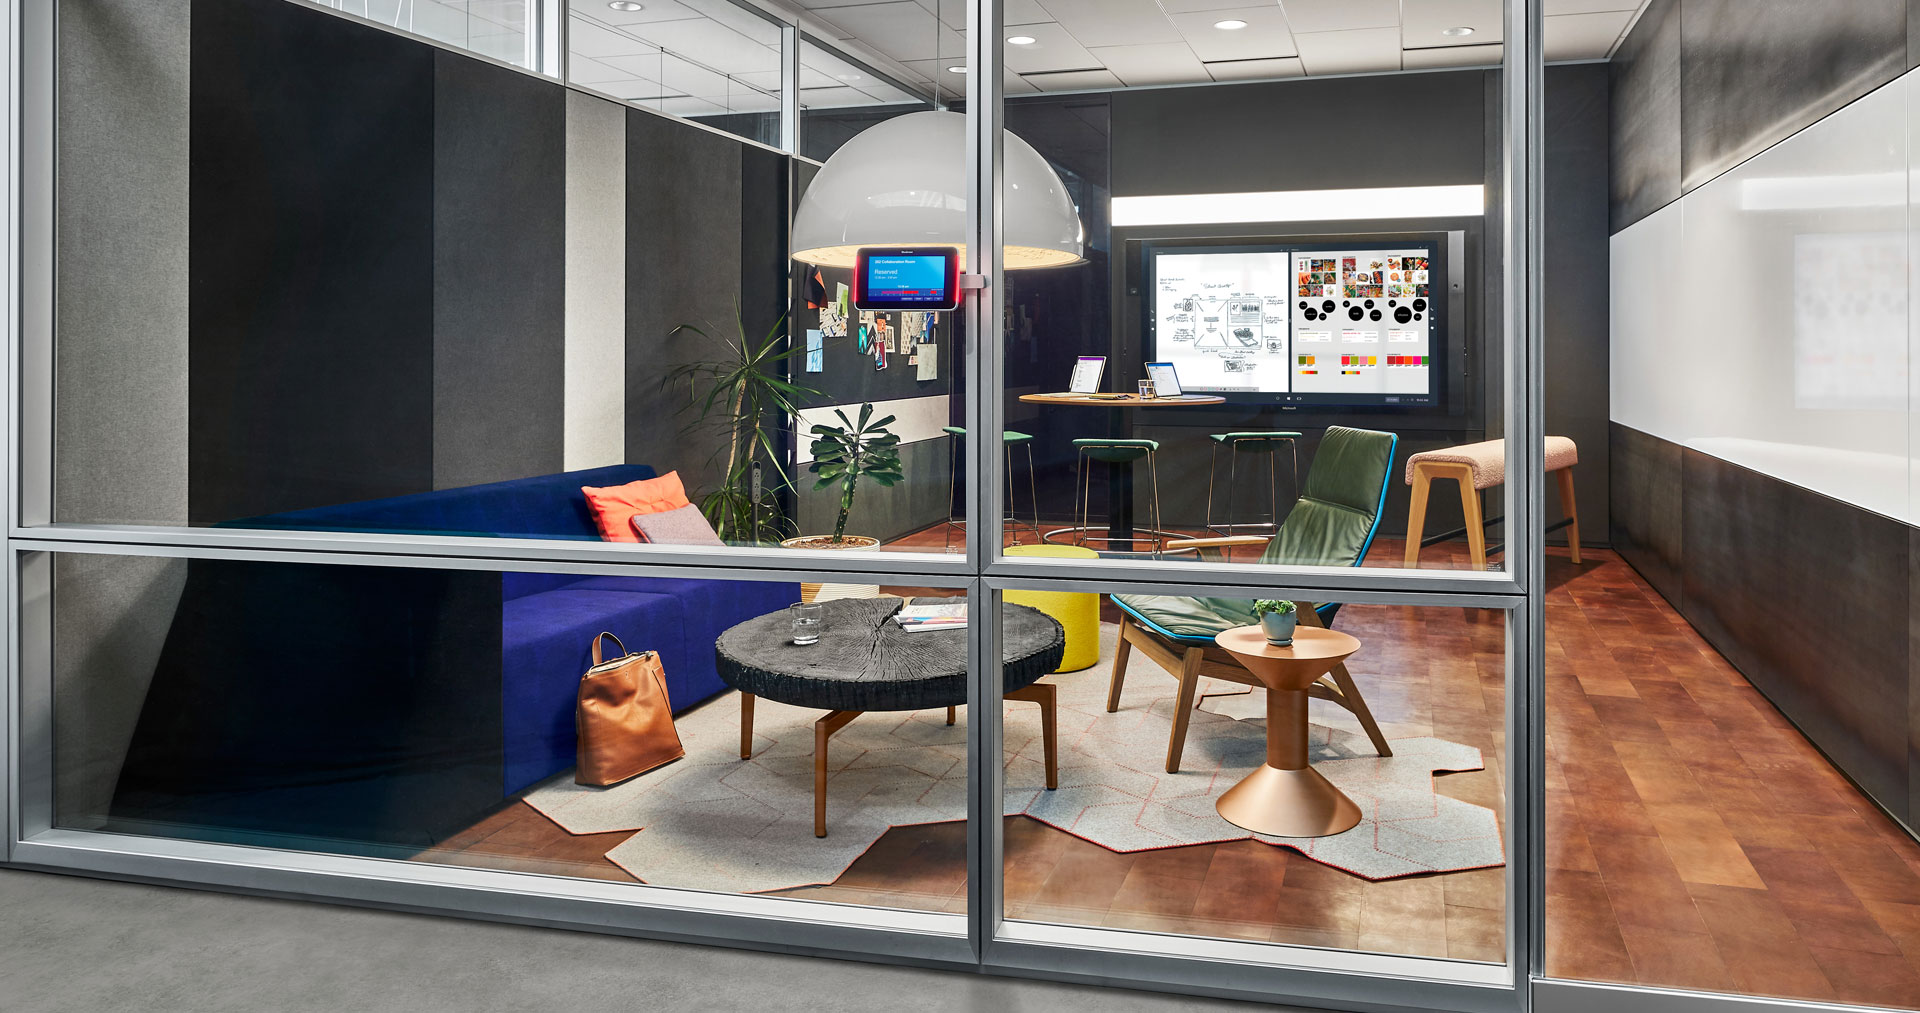 NBS_Steelcase_architectural-systems_18-0104690